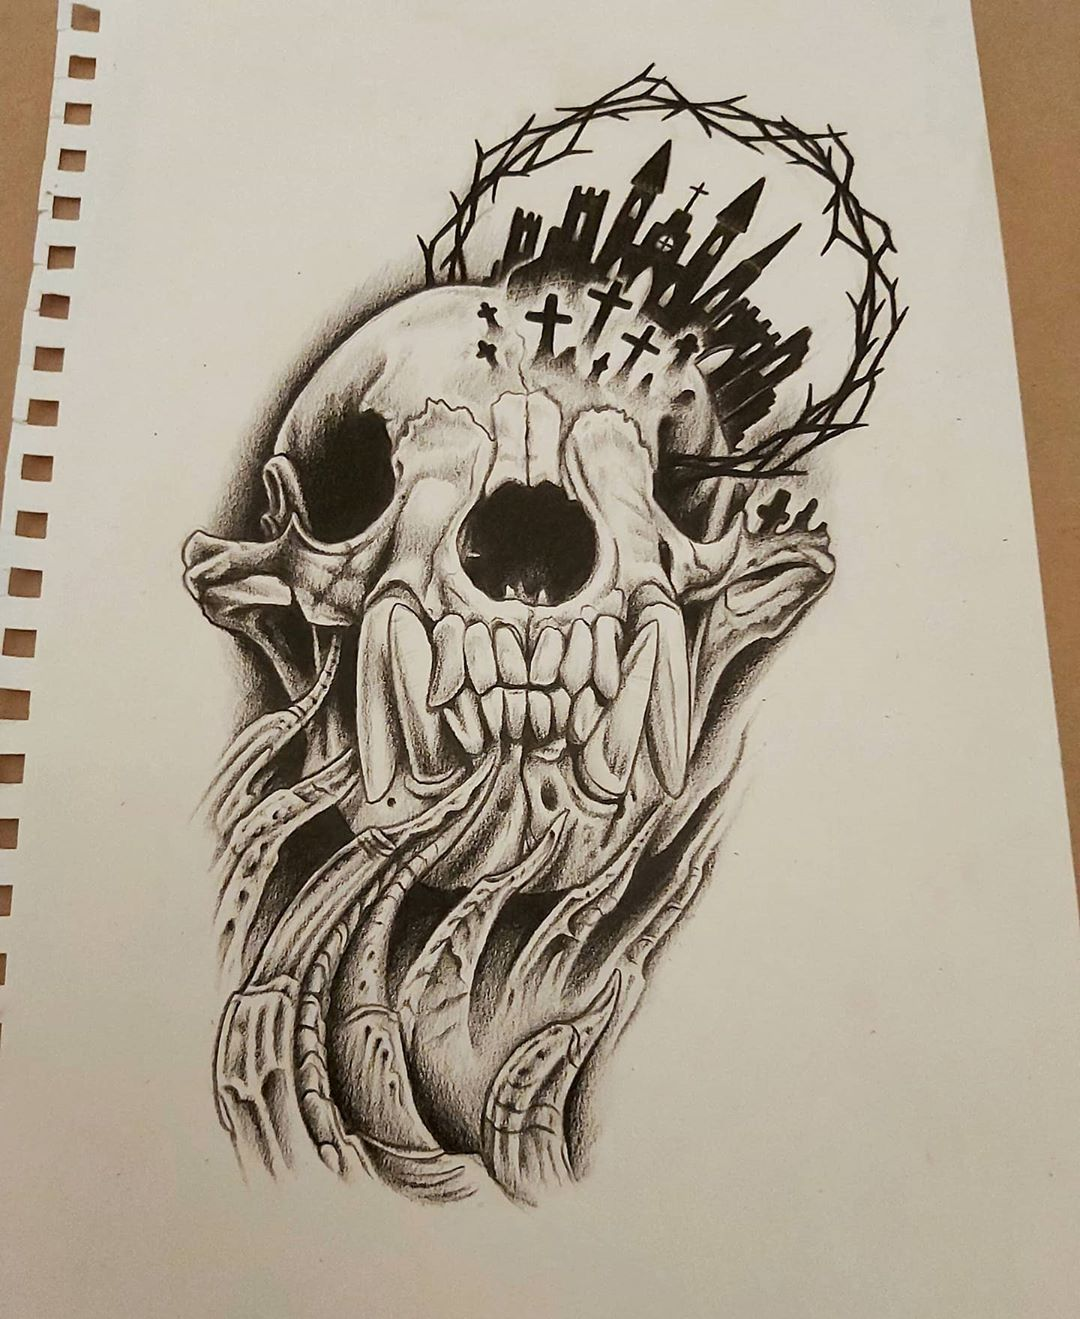 Yet another drawing from B, guess there's nothing else to do! @beesmithtattoo #agencyinc #agencytattoo #tattoo #tattoos #dunedin #nz #flash #tattooflash #tattoodesign #drawing #skull #lockdown